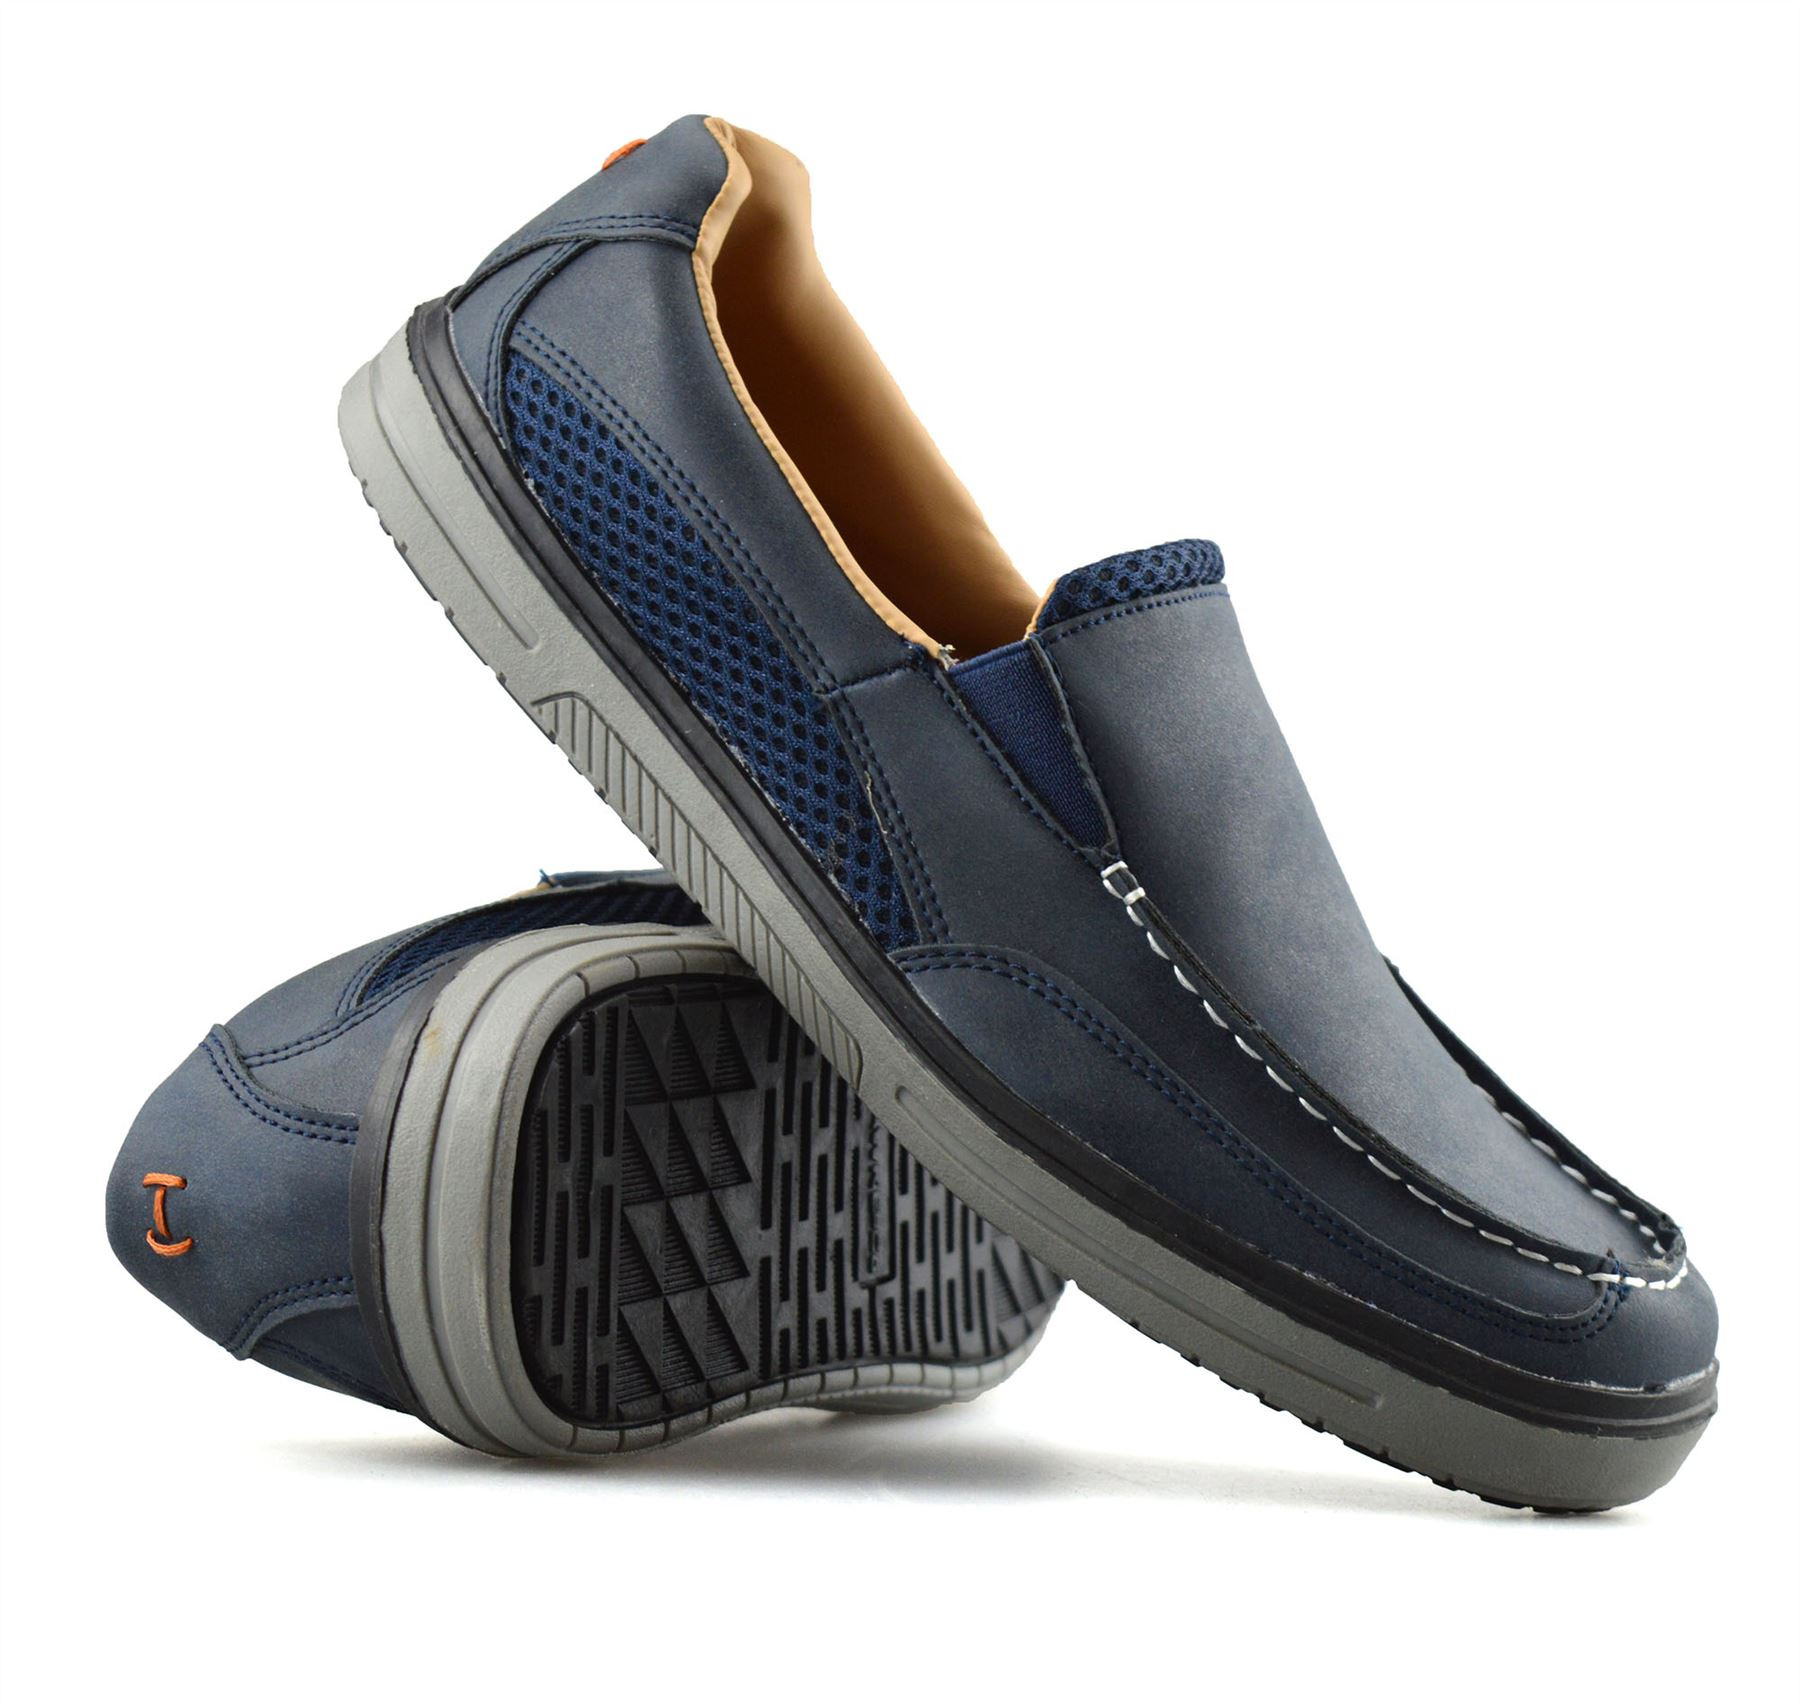 Mens-Casual-Memory-Foam-Slip-On-Walking-Loafers-Moccasin-Driving-Boat-Shoes-Size thumbnail 28